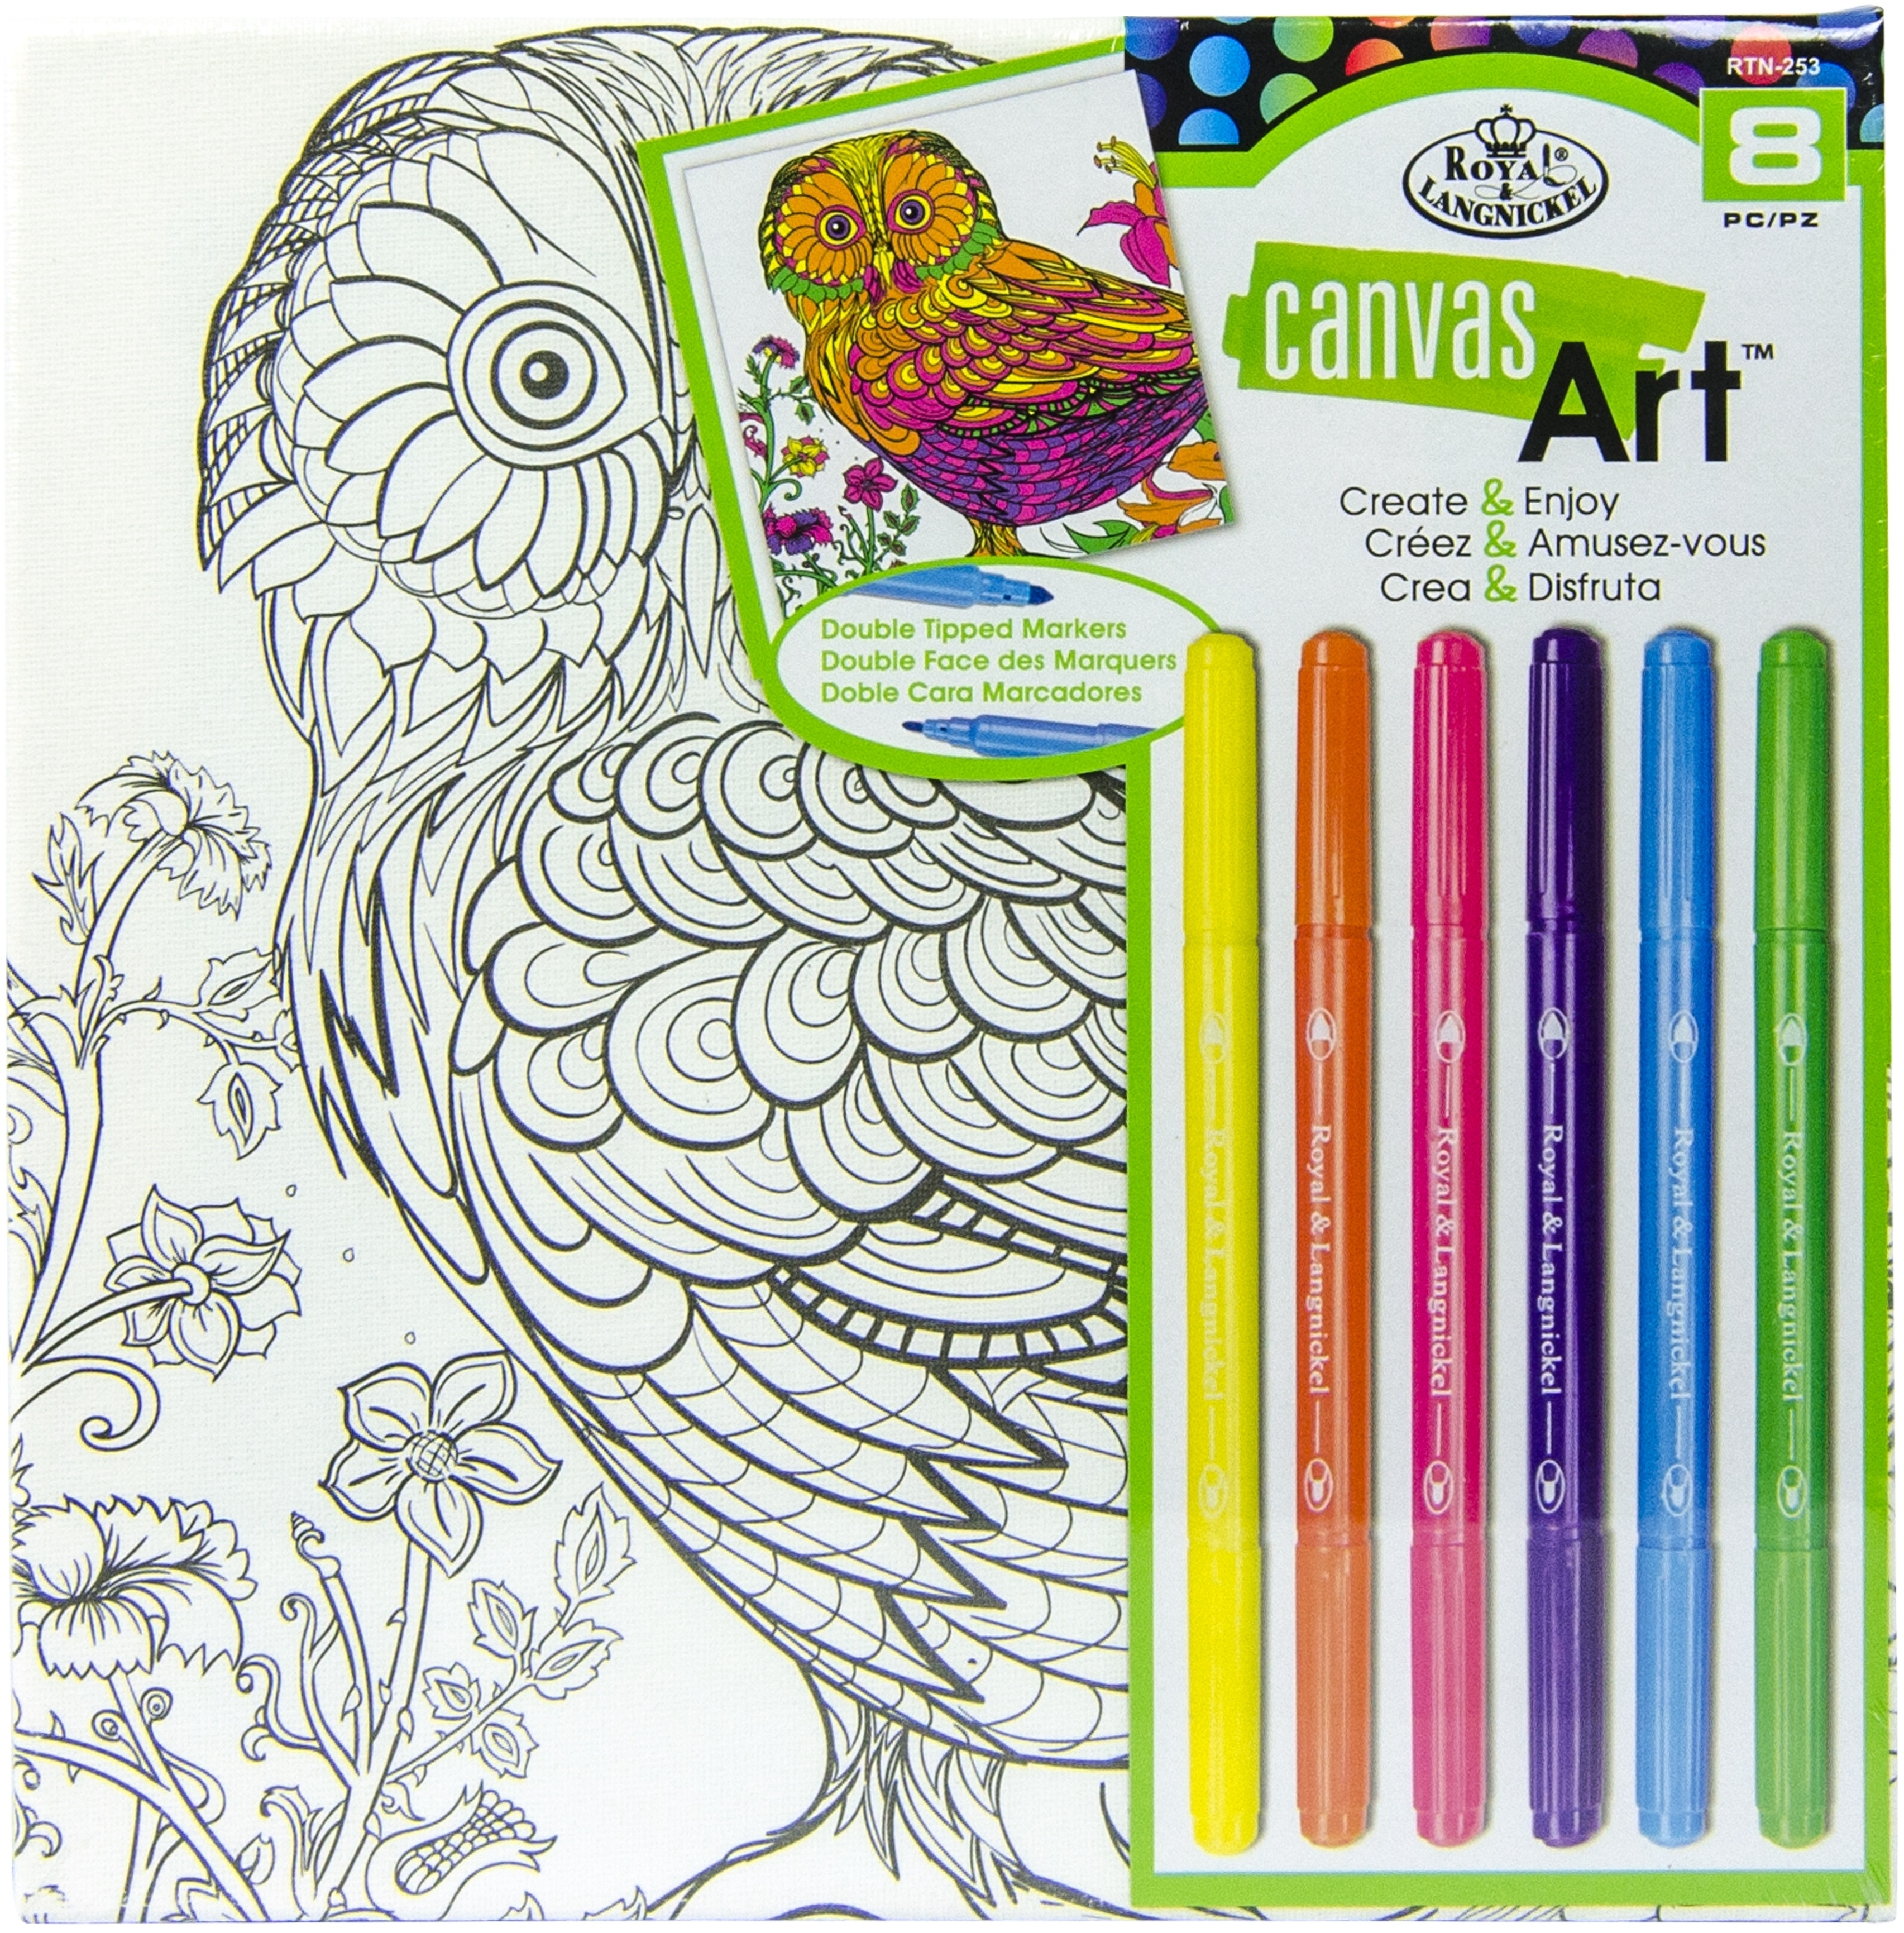 Canvas Art Markers Kit 10X10-Owl